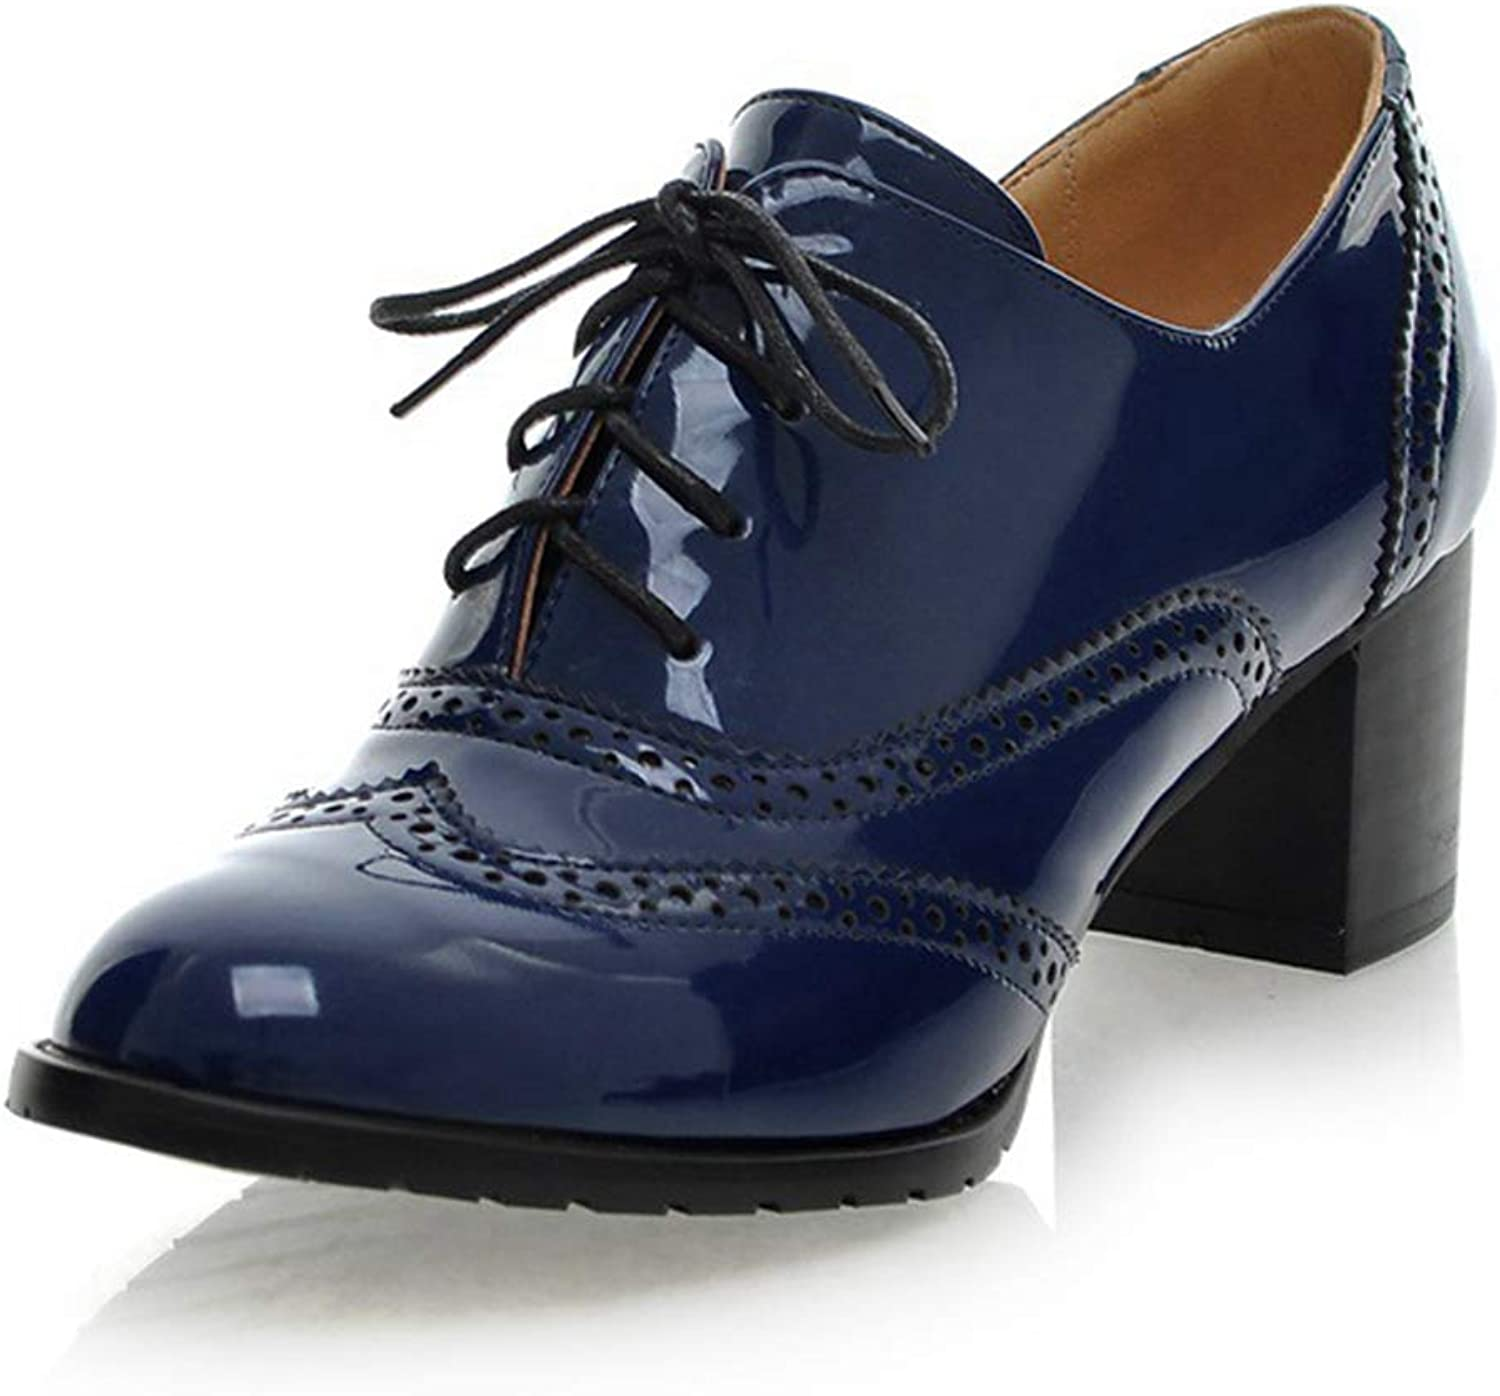 CYBLING Women's Lace up Wingtip Oxford shoes Fashion Patent Leather Chunky Mid Heel Ankle Bootie